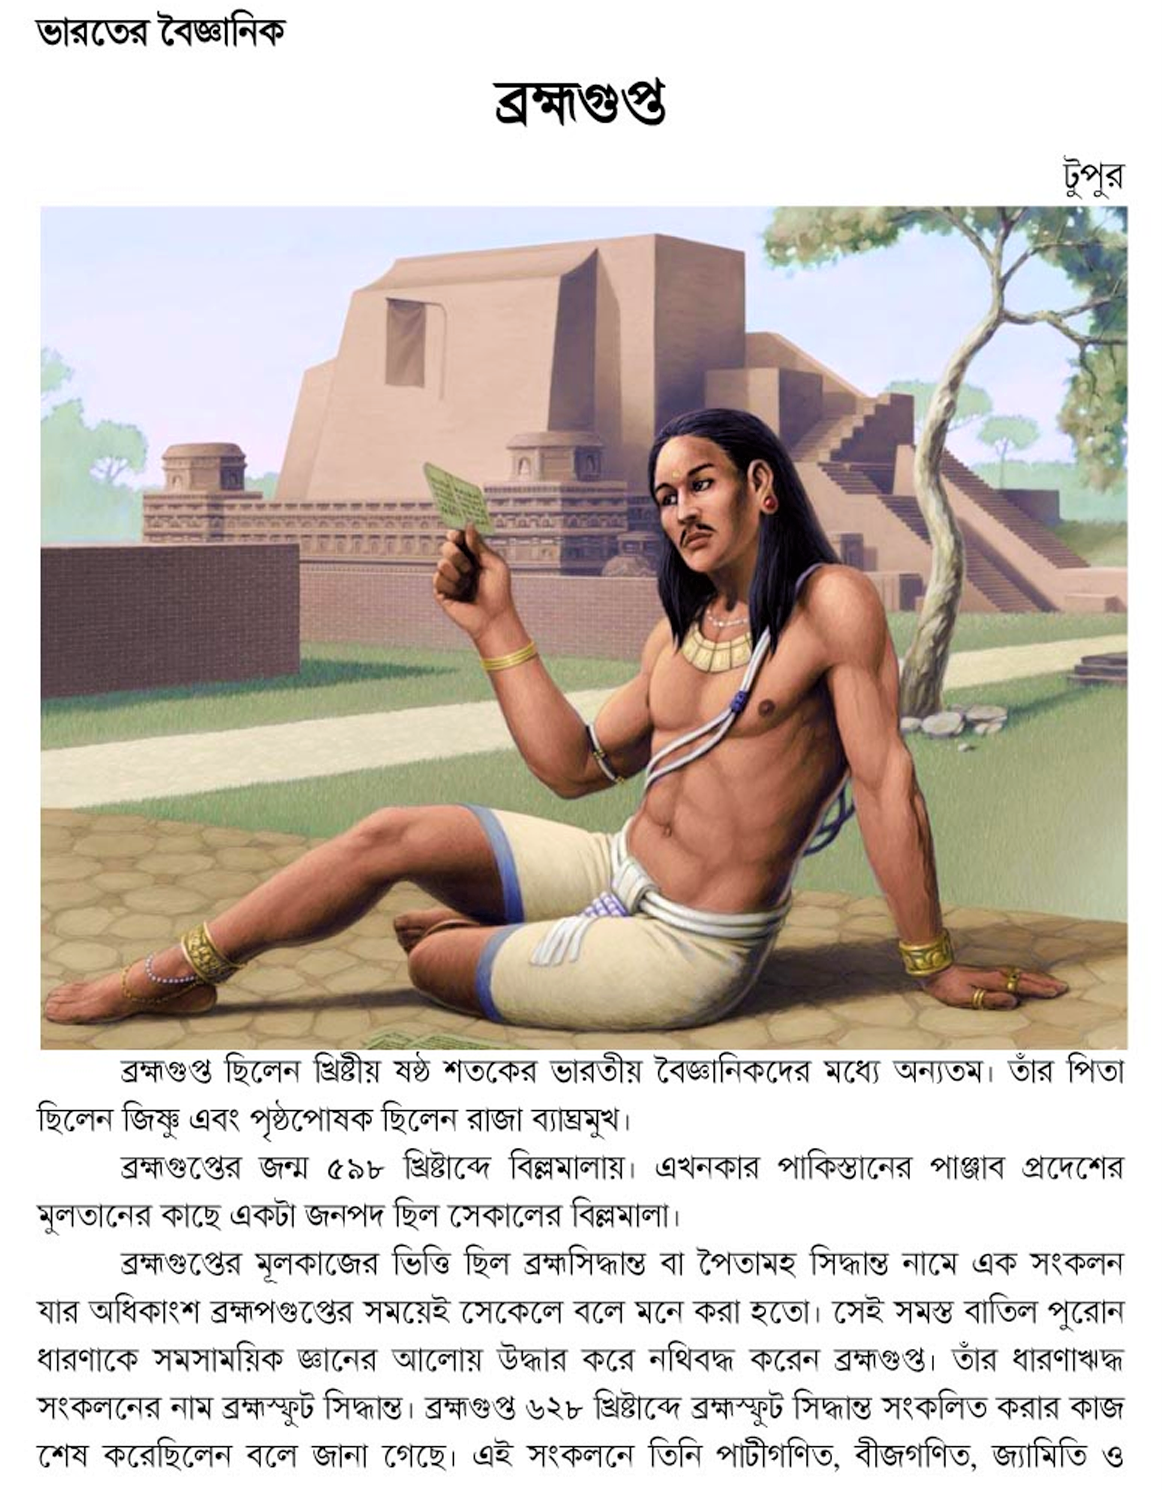 Brahmagupta, his invention and story in Hindi Language